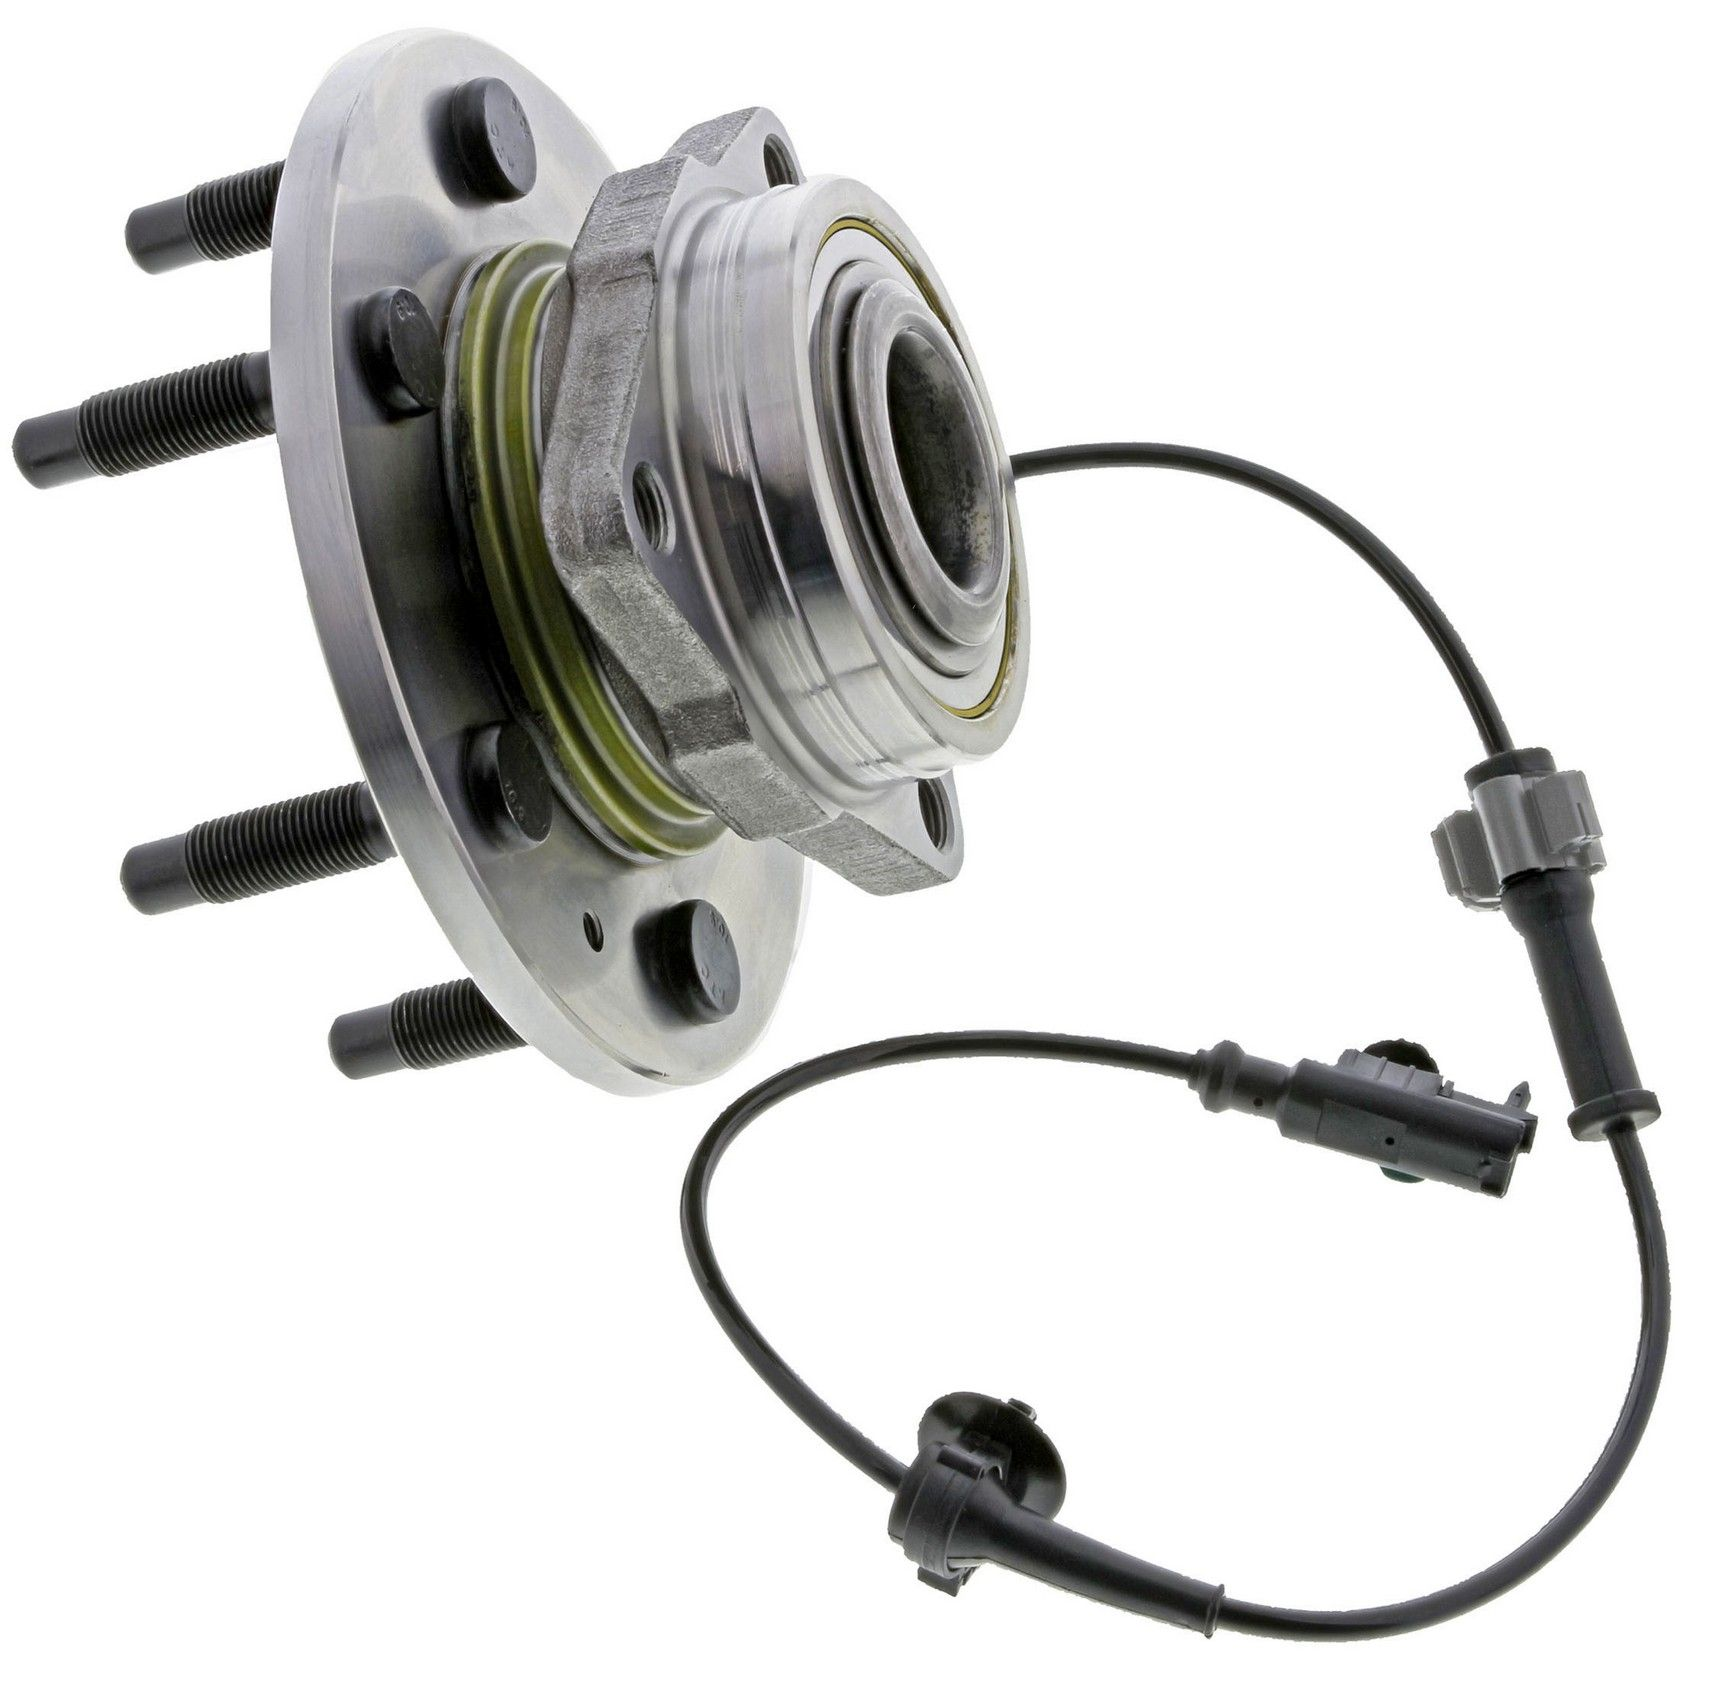 Chevrolet Silverado 1500 Wheel Bearing and Hub Assembly Replacement